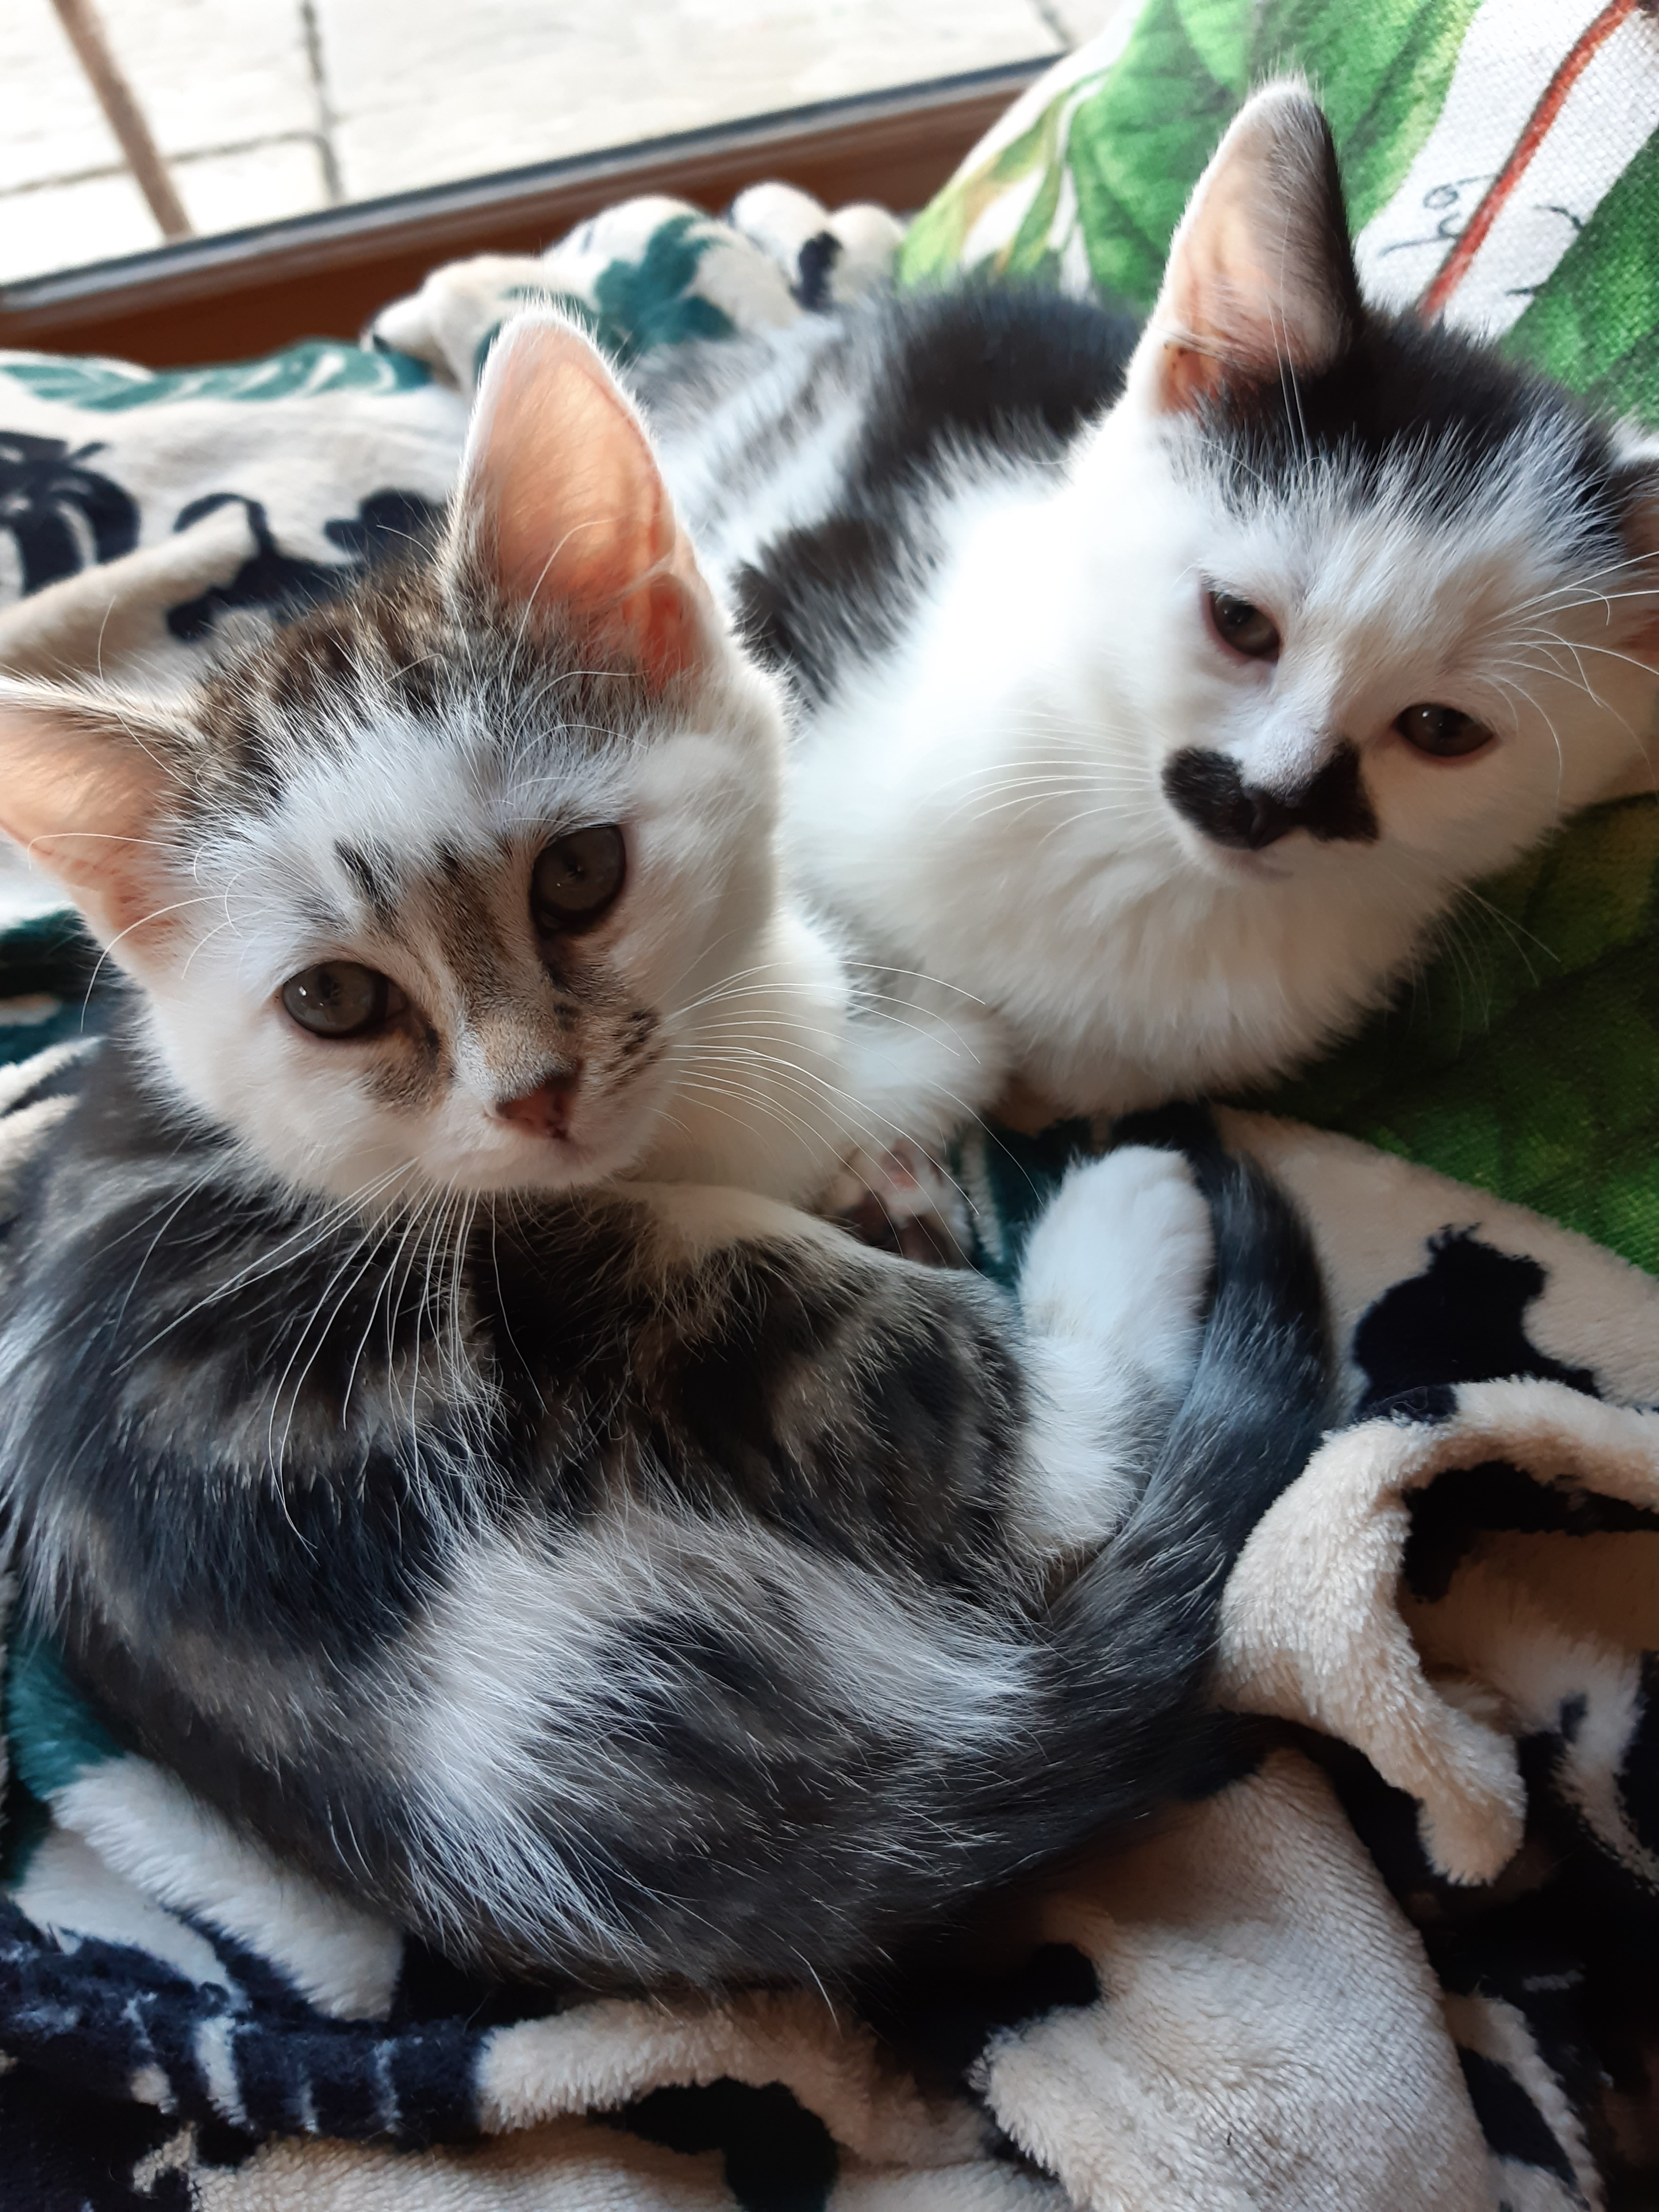 photo of two kittens on fleecy blanket